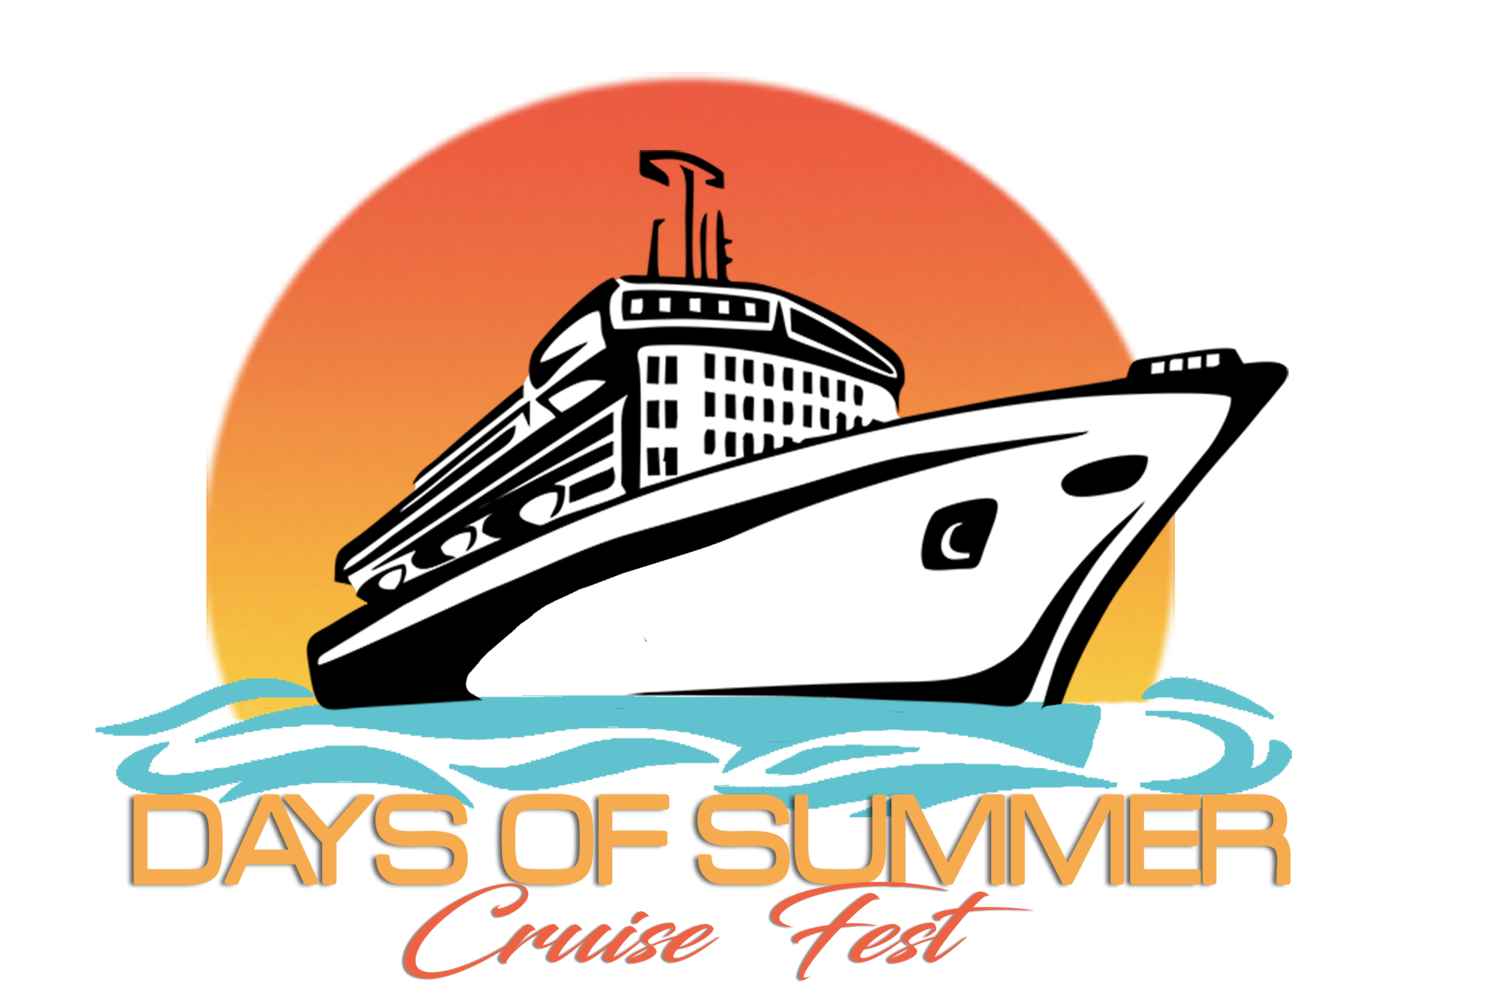 Days of Summer Cruise